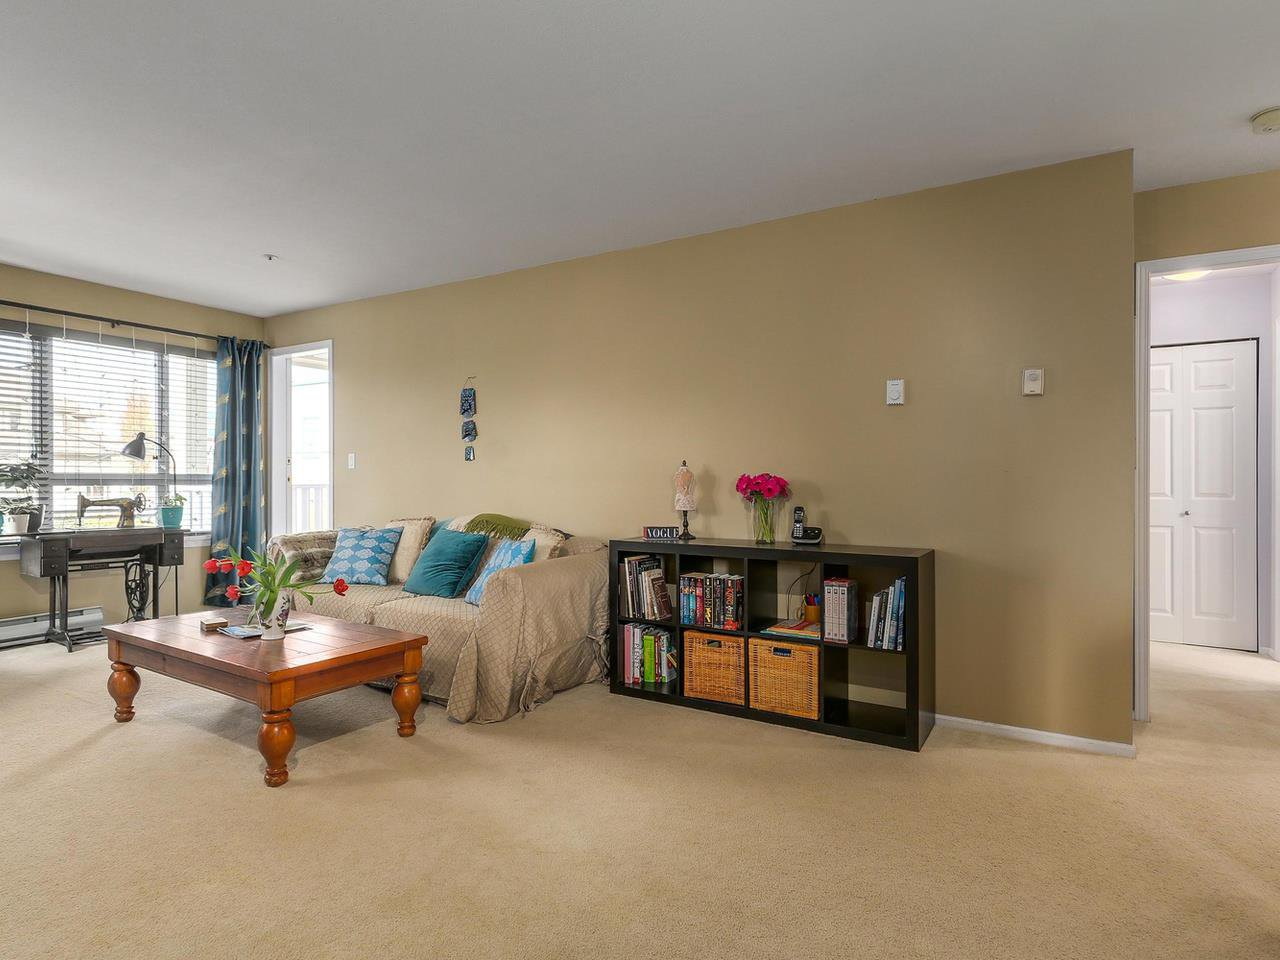 """Photo 10: Photos: 301 1623 E 2ND Avenue in Vancouver: Grandview VE Condo for sale in """"GRANDVIEW MANOR"""" (Vancouver East)  : MLS®# R2122830"""